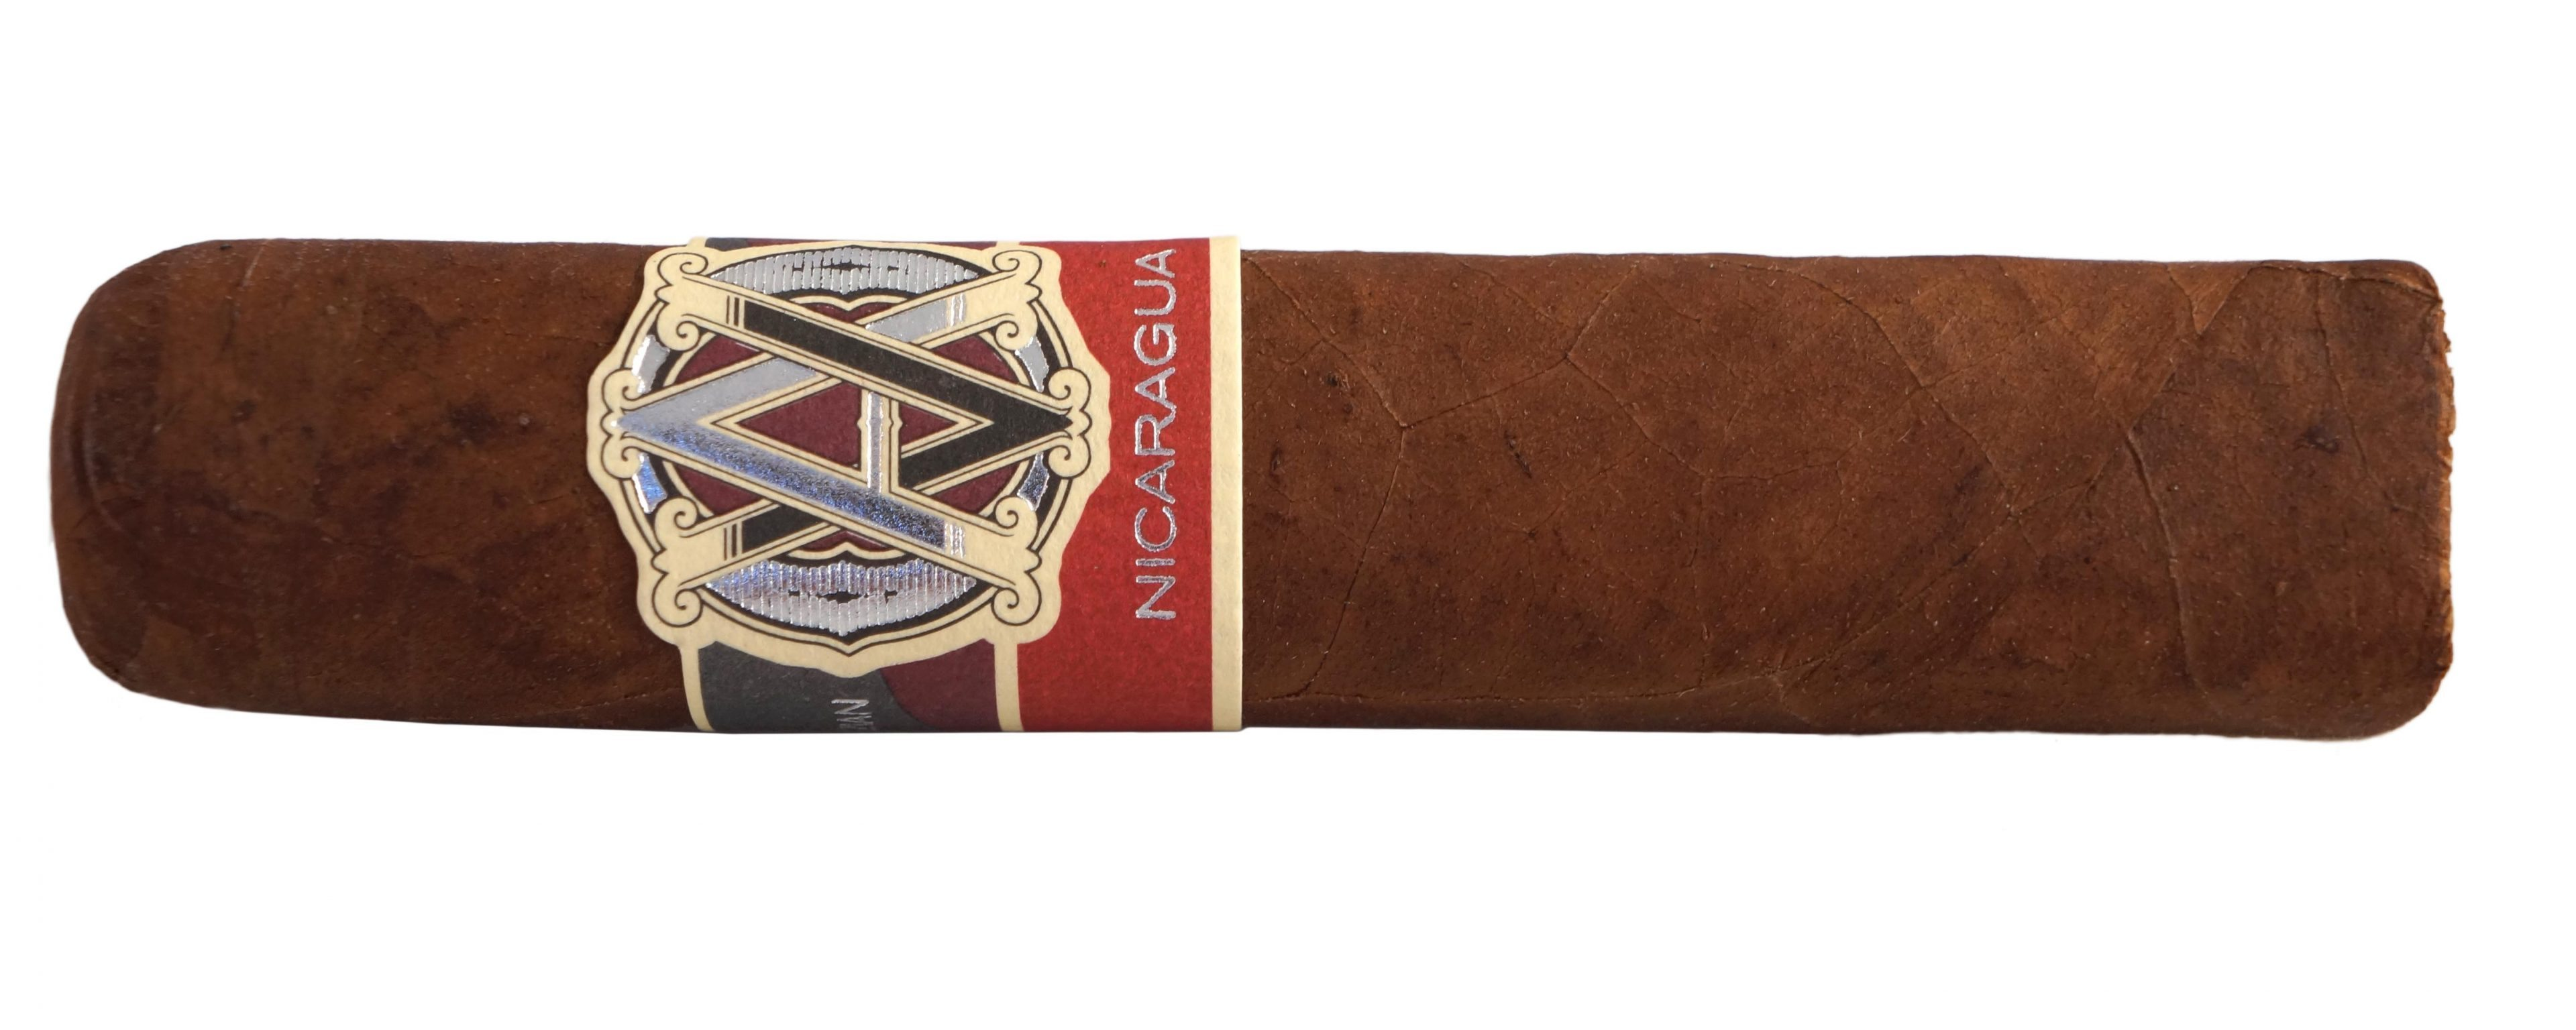 Blind Cigar Review: AVO | Syncro Nicaragua Short Robusto